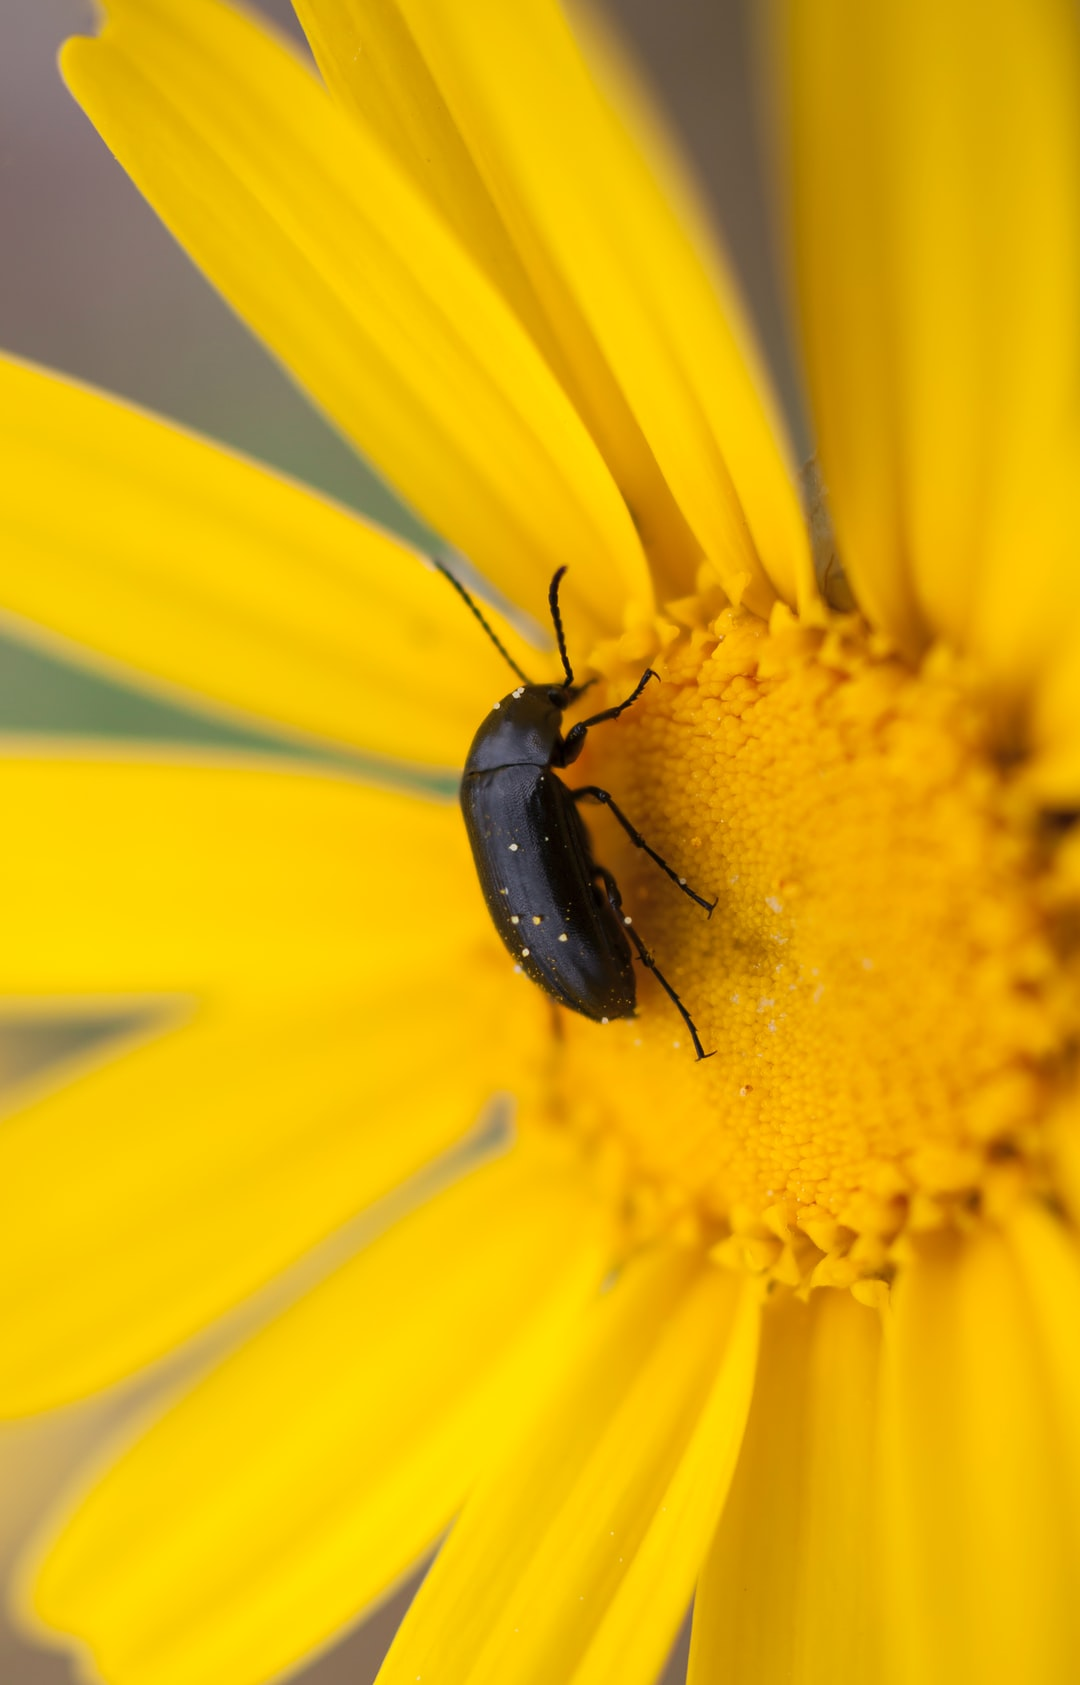 Located in Pani Hill overlooking the city of Athens, a Beetle (Melanotus Rufipes) feeds on a Yellow Daisie (Chrysanthemum coronarium) in early Spring, a few hours before sunset.